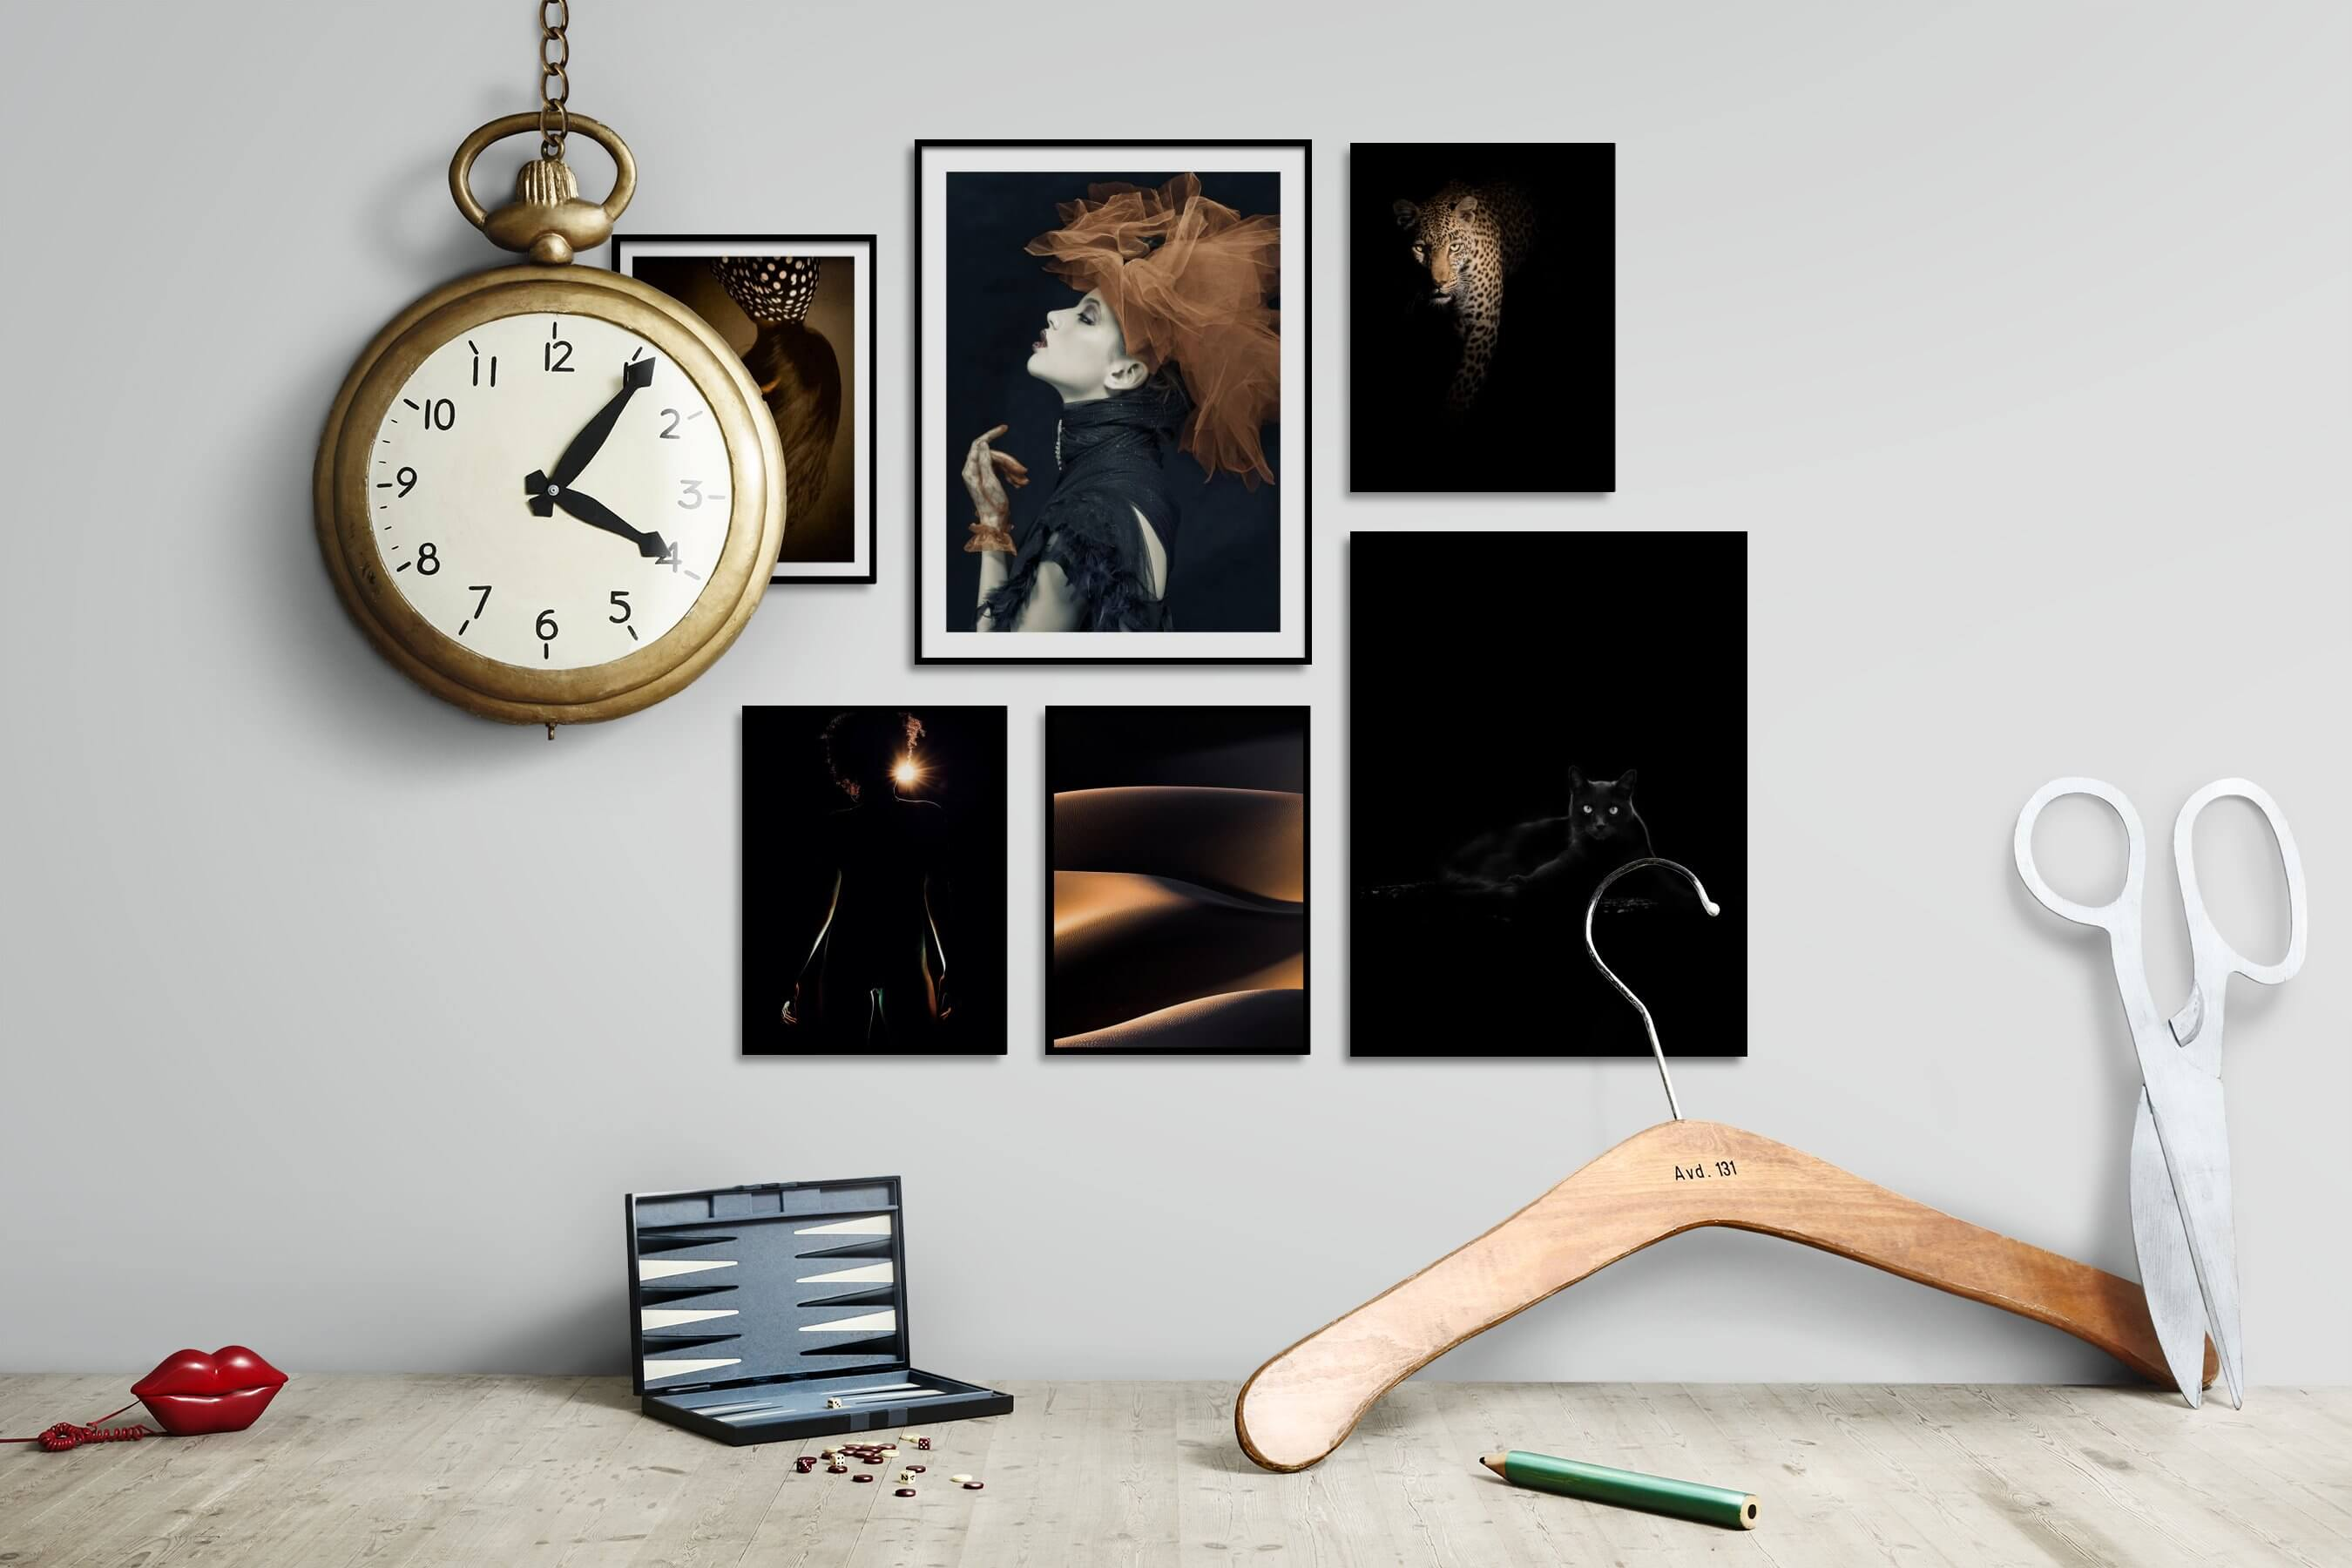 Gallery wall idea with six framed pictures arranged on a wall depicting Artsy, For the Moderate, Fashion & Beauty, Vintage, Dark Tones, For the Minimalist, Nature, Animals, and Black & White